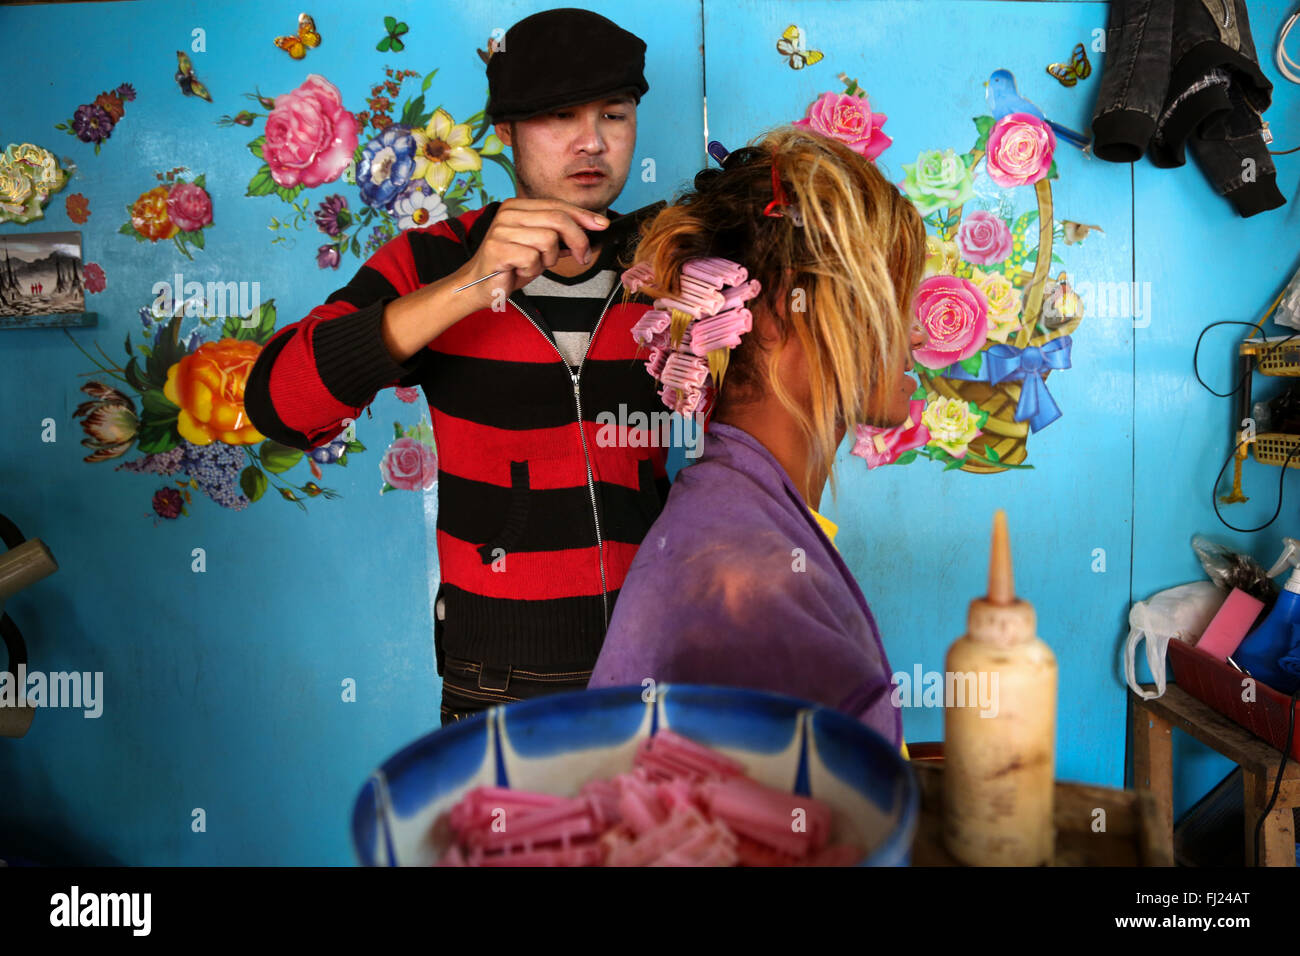 Colorful and nicely decorated hairdresser salon in Rangoon Myanmar - Stock Image